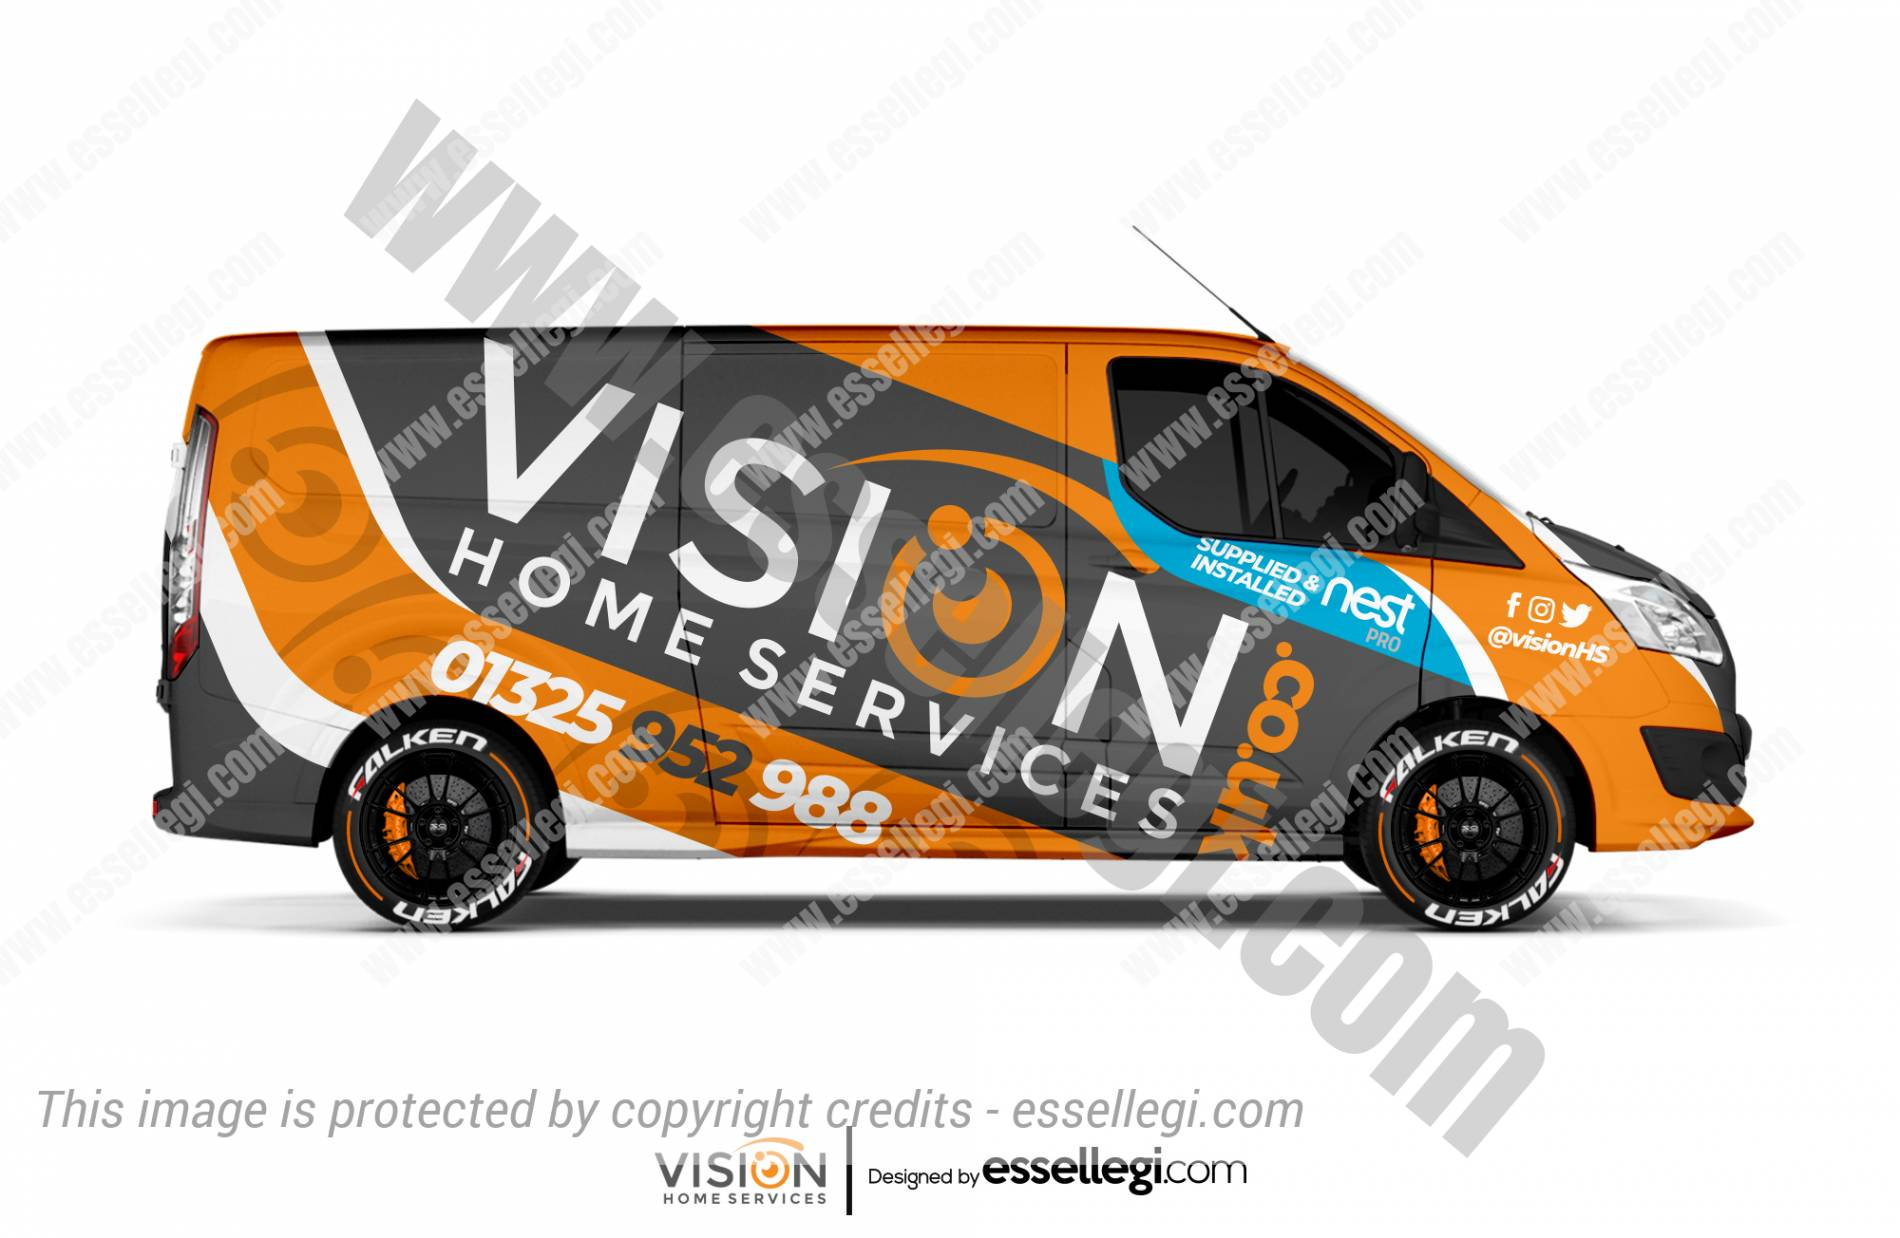 a46c852078 Are you looking for Best Transit Custom Van Wrap Design   Create yours!